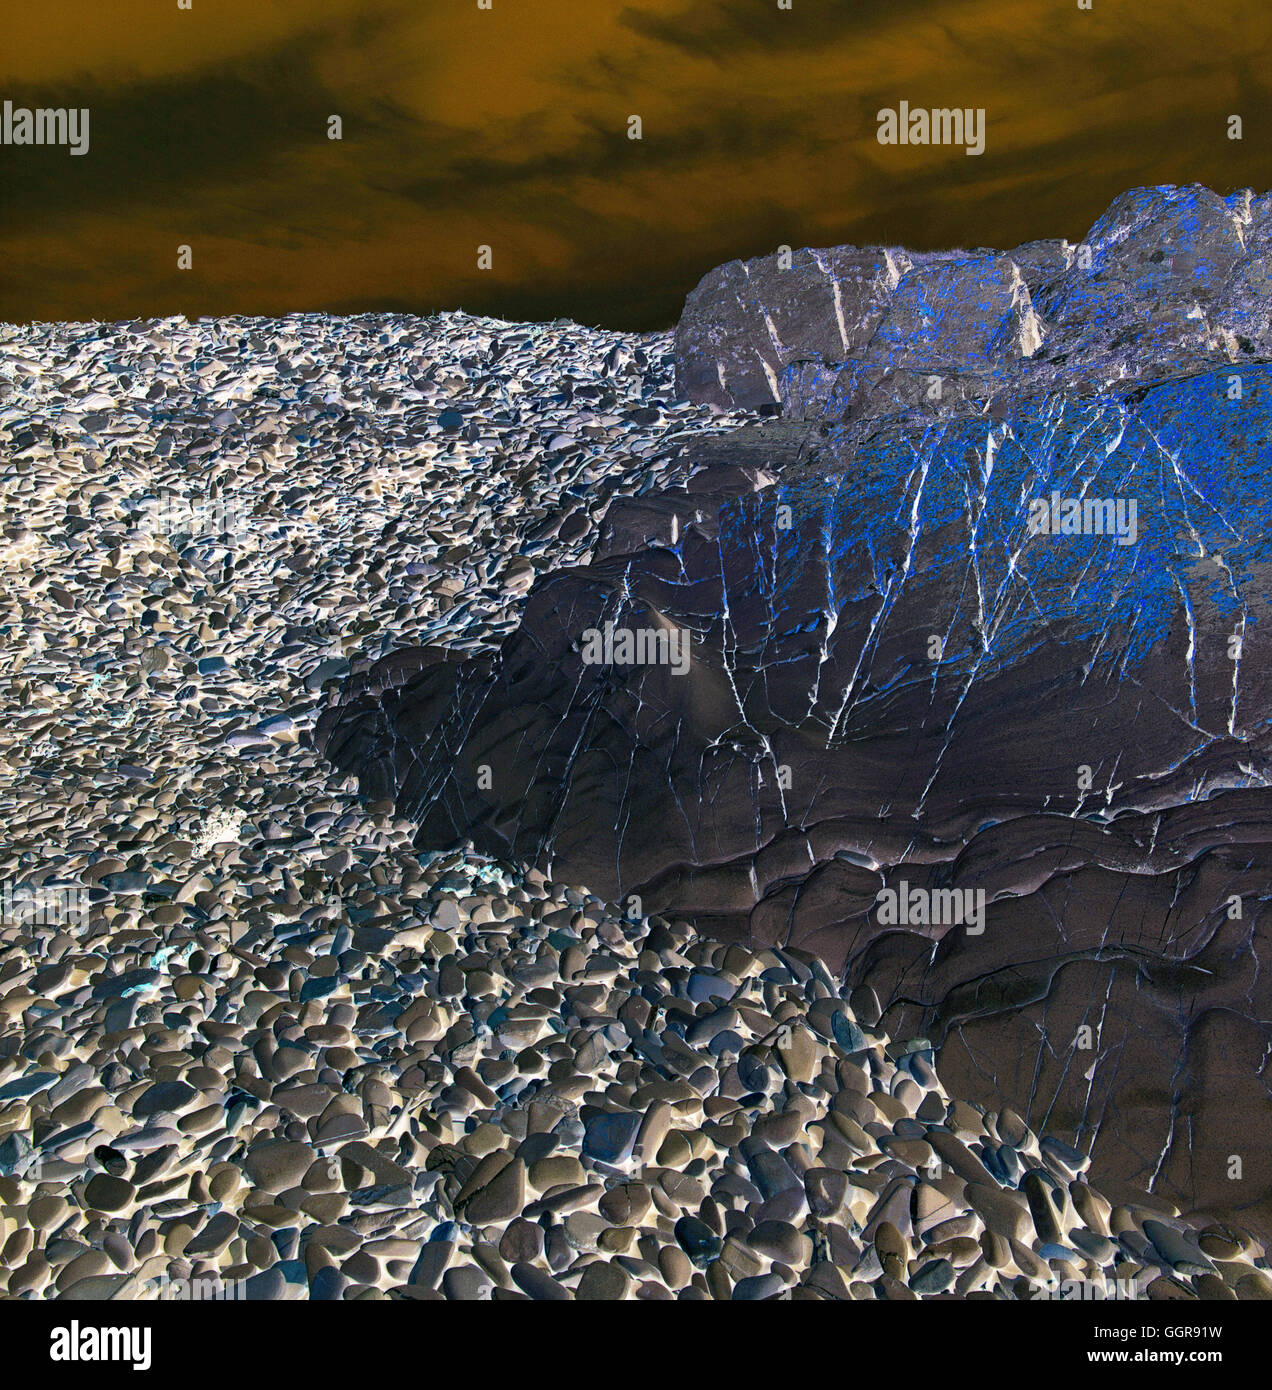 Digitale Kunst Natur - Rock2 Stockbild